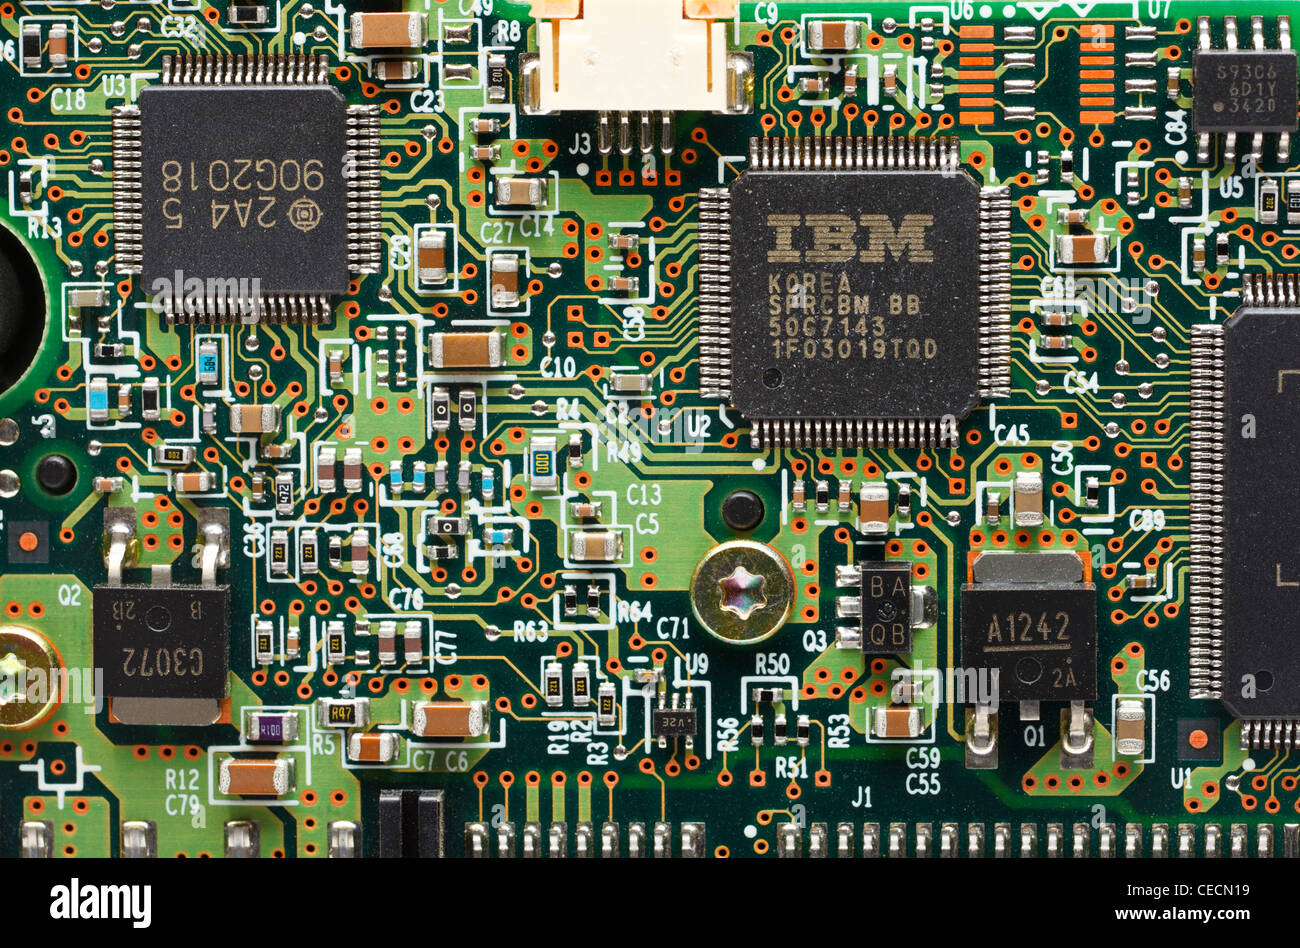 circuit board components stock photos circuit board components rh alamy com Board of Directors Duties Laptop Camera